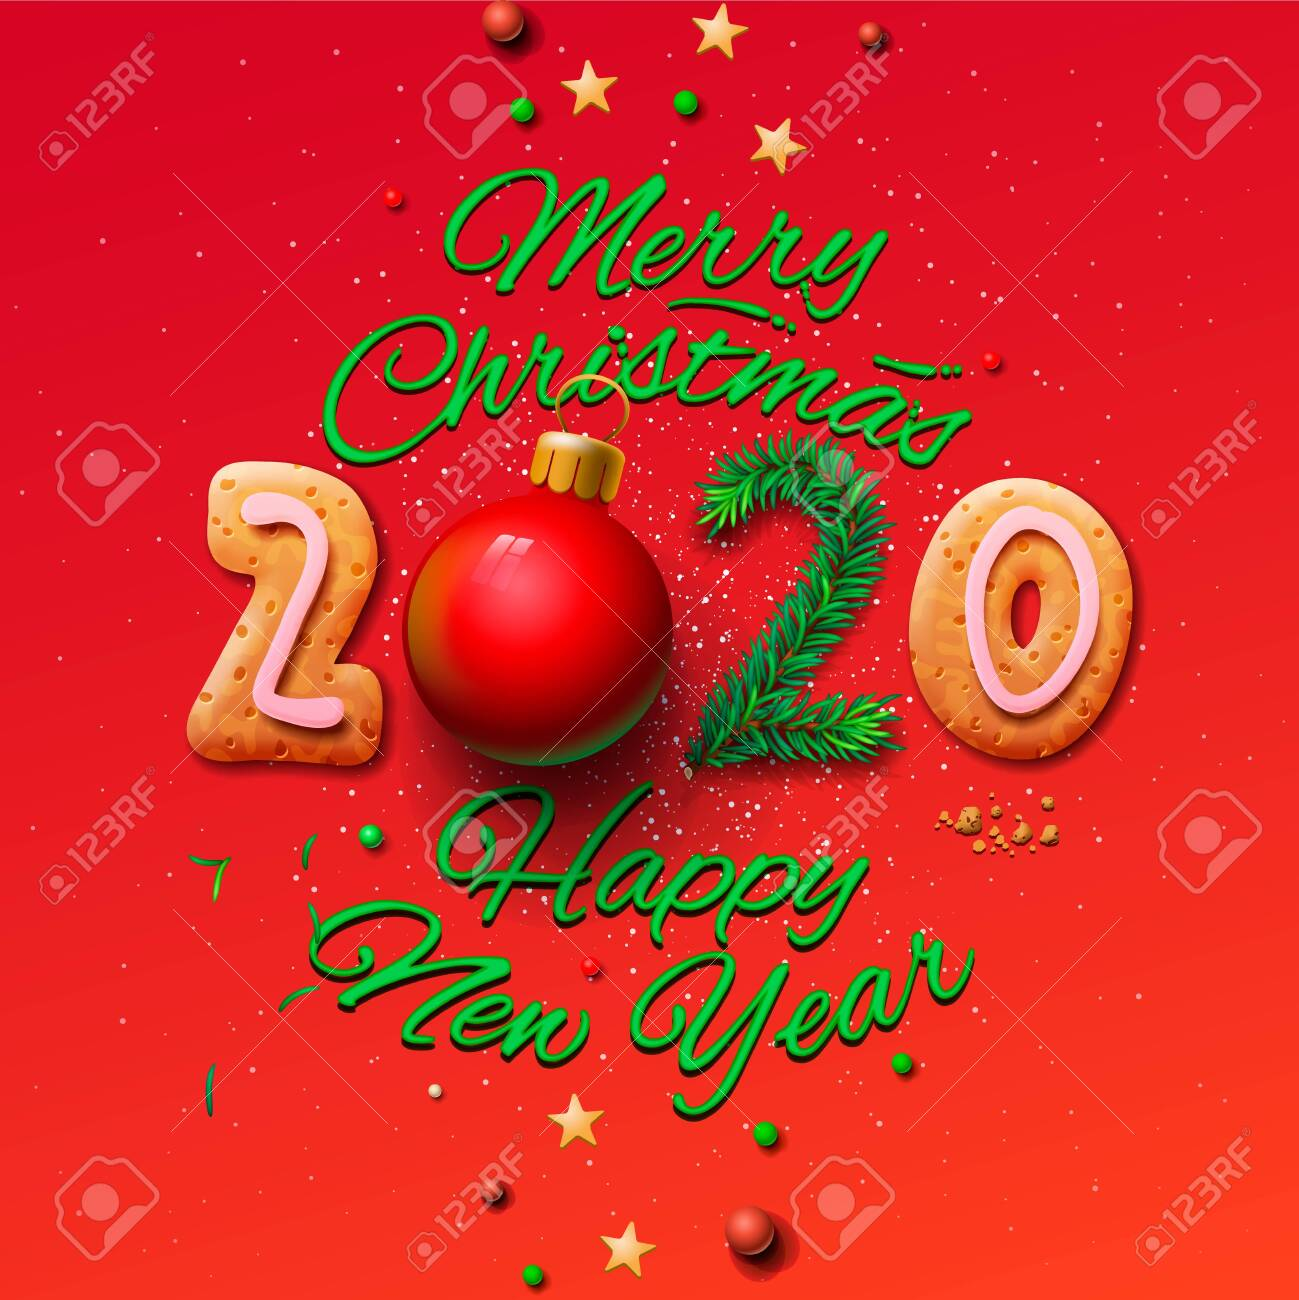 Merry Christmas And Happy New Year 2020 Greeting Card, Vector